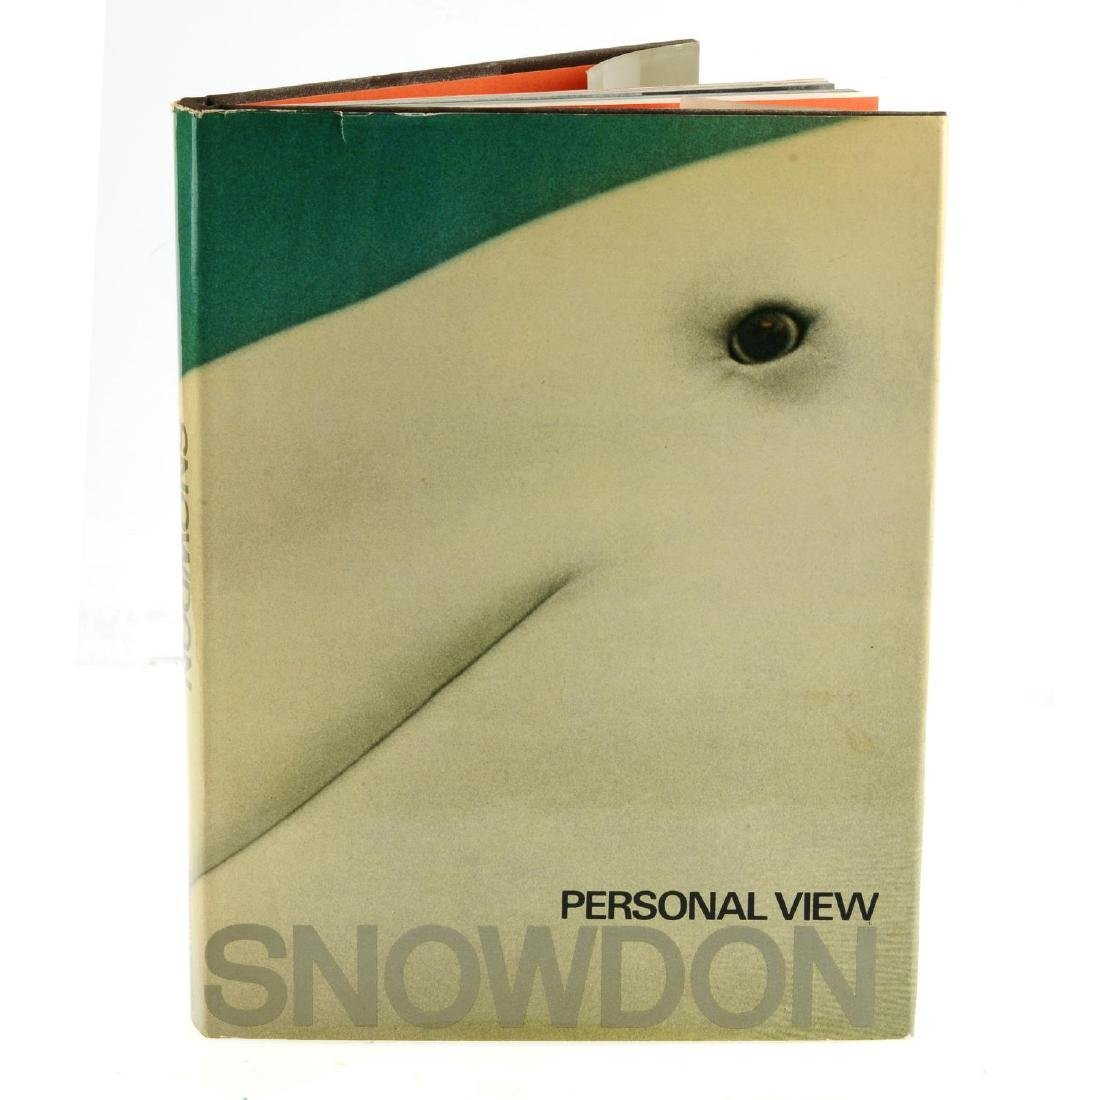 Tony Snowdon - Personal View - a signed book, with